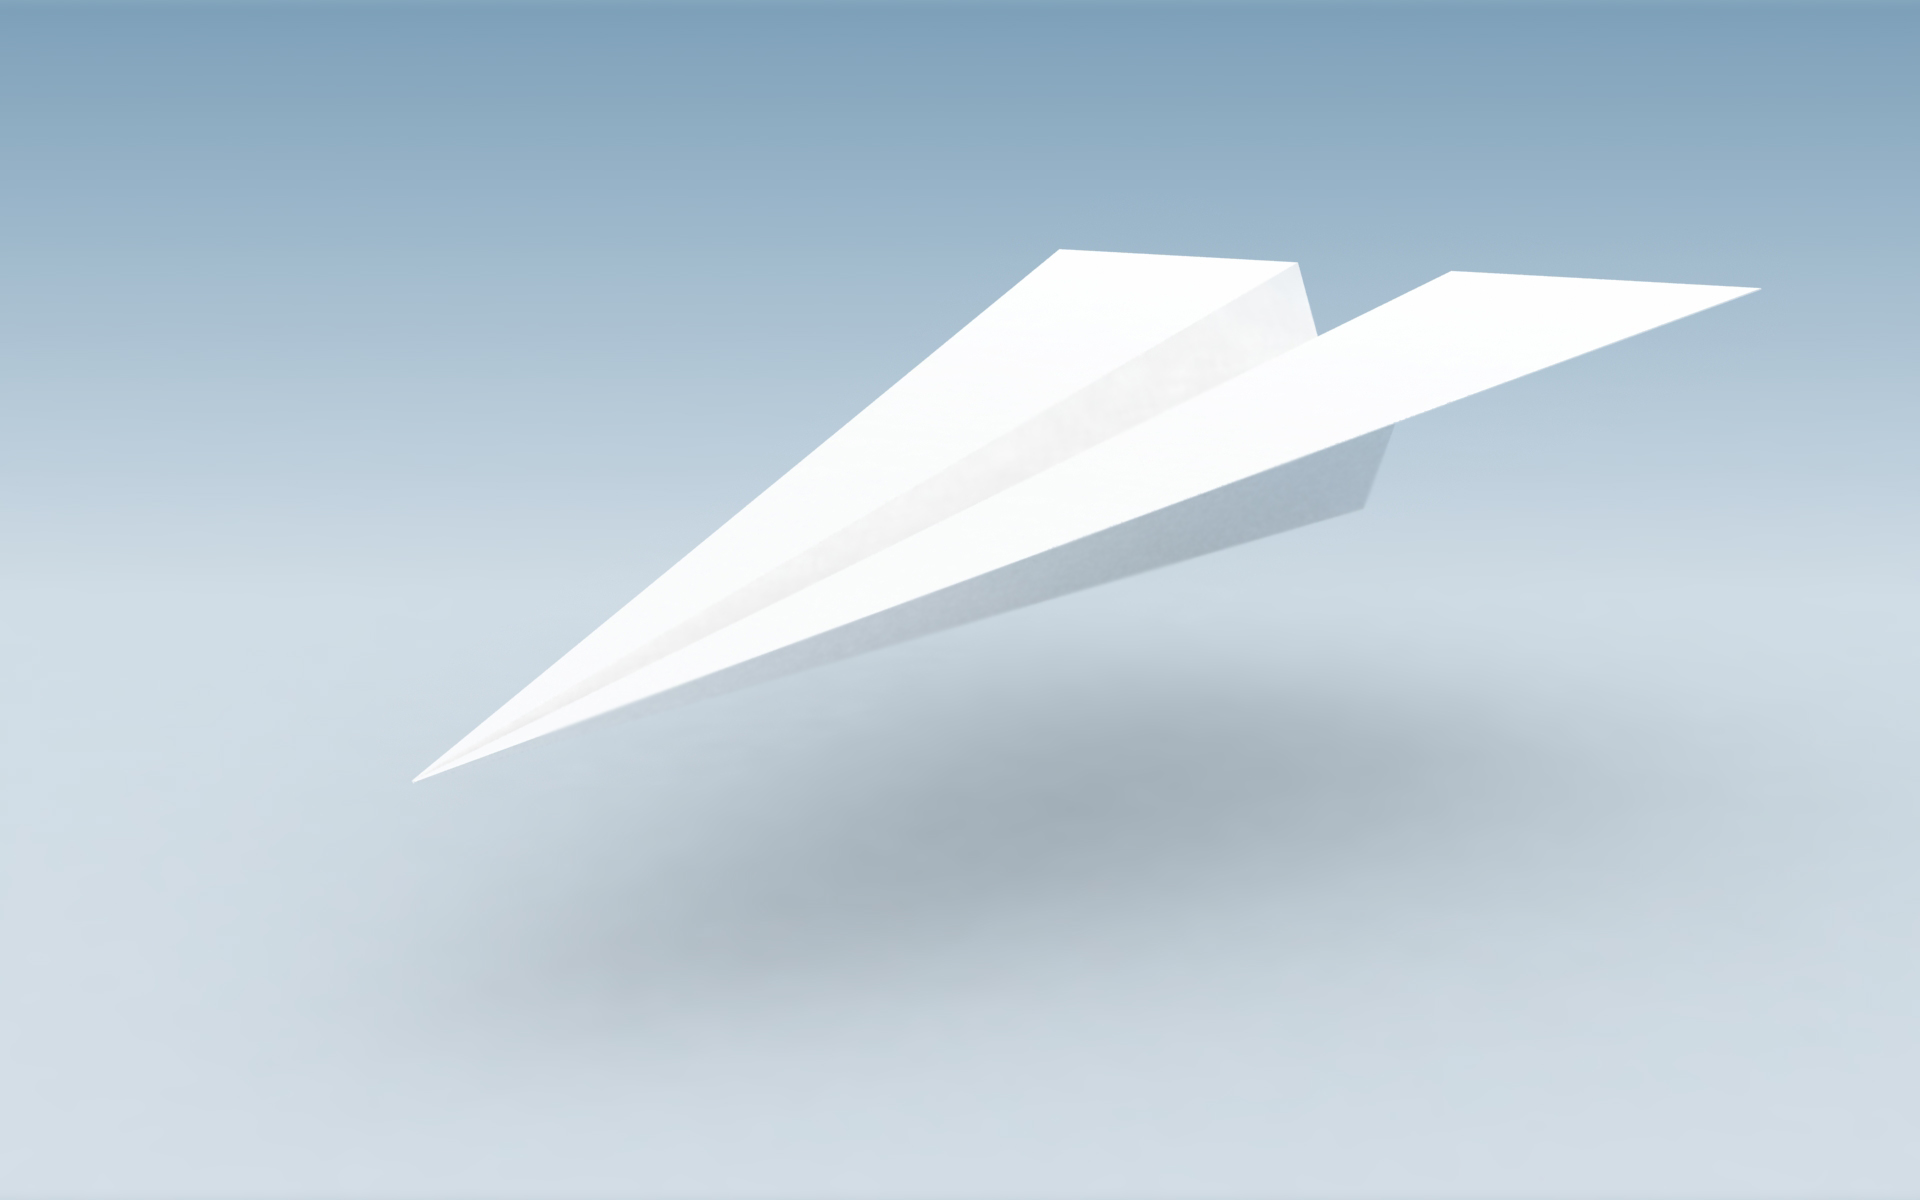 paper airplanes wallpapers high